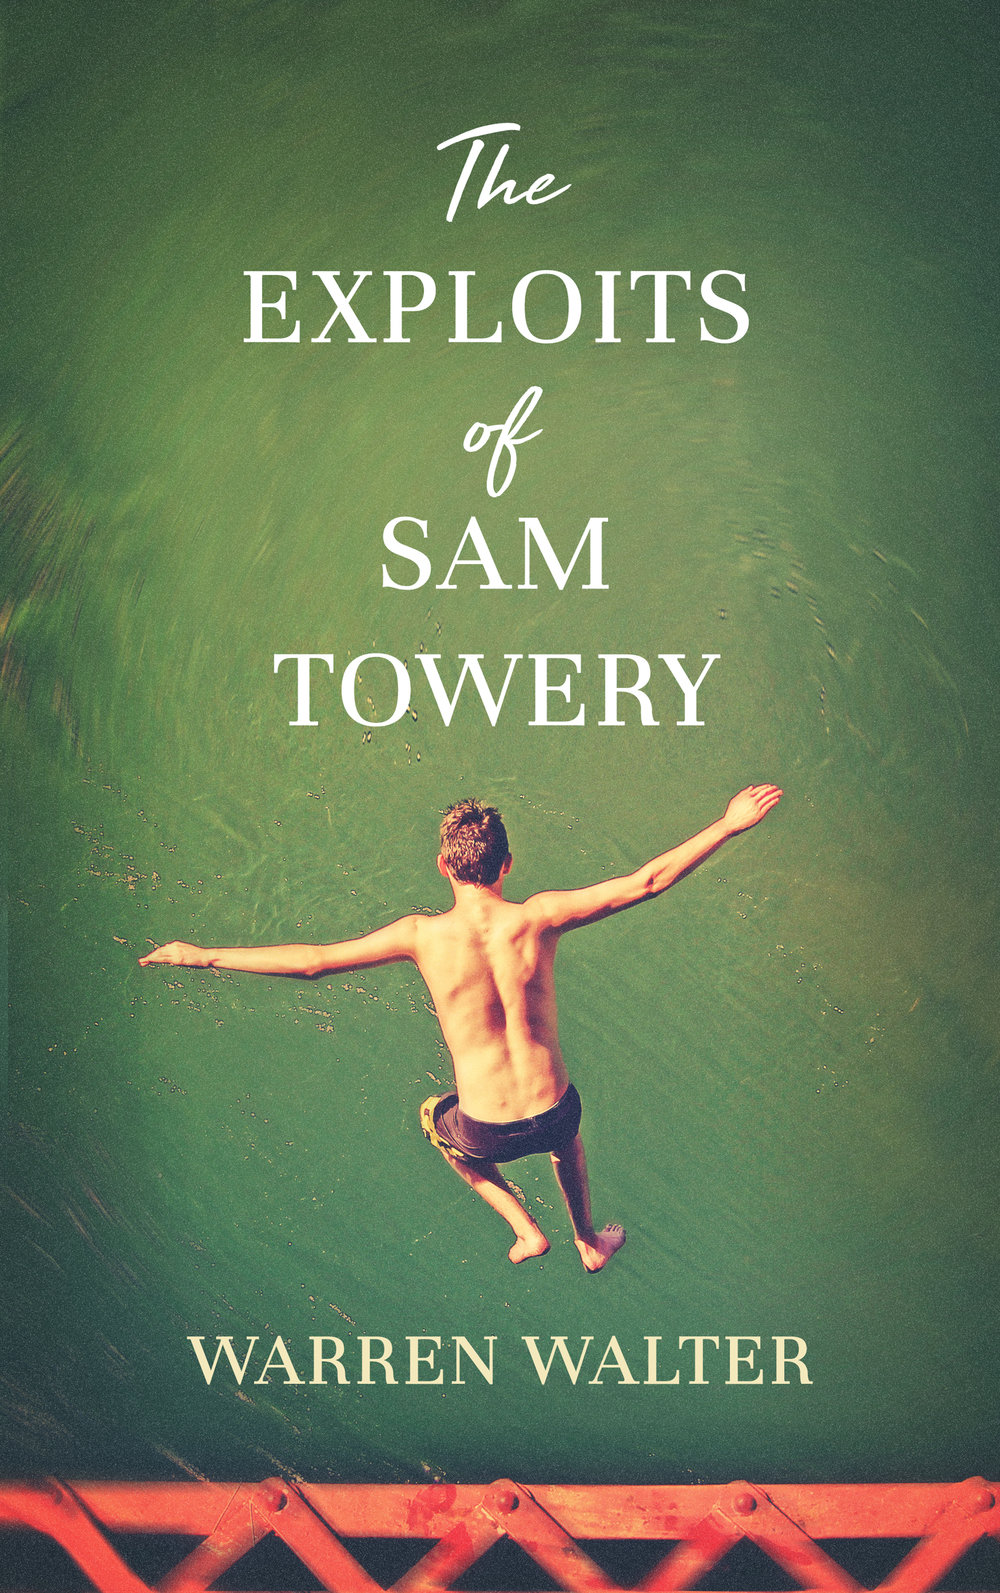 The Exploits of Sam Towery - Ebook.jpg